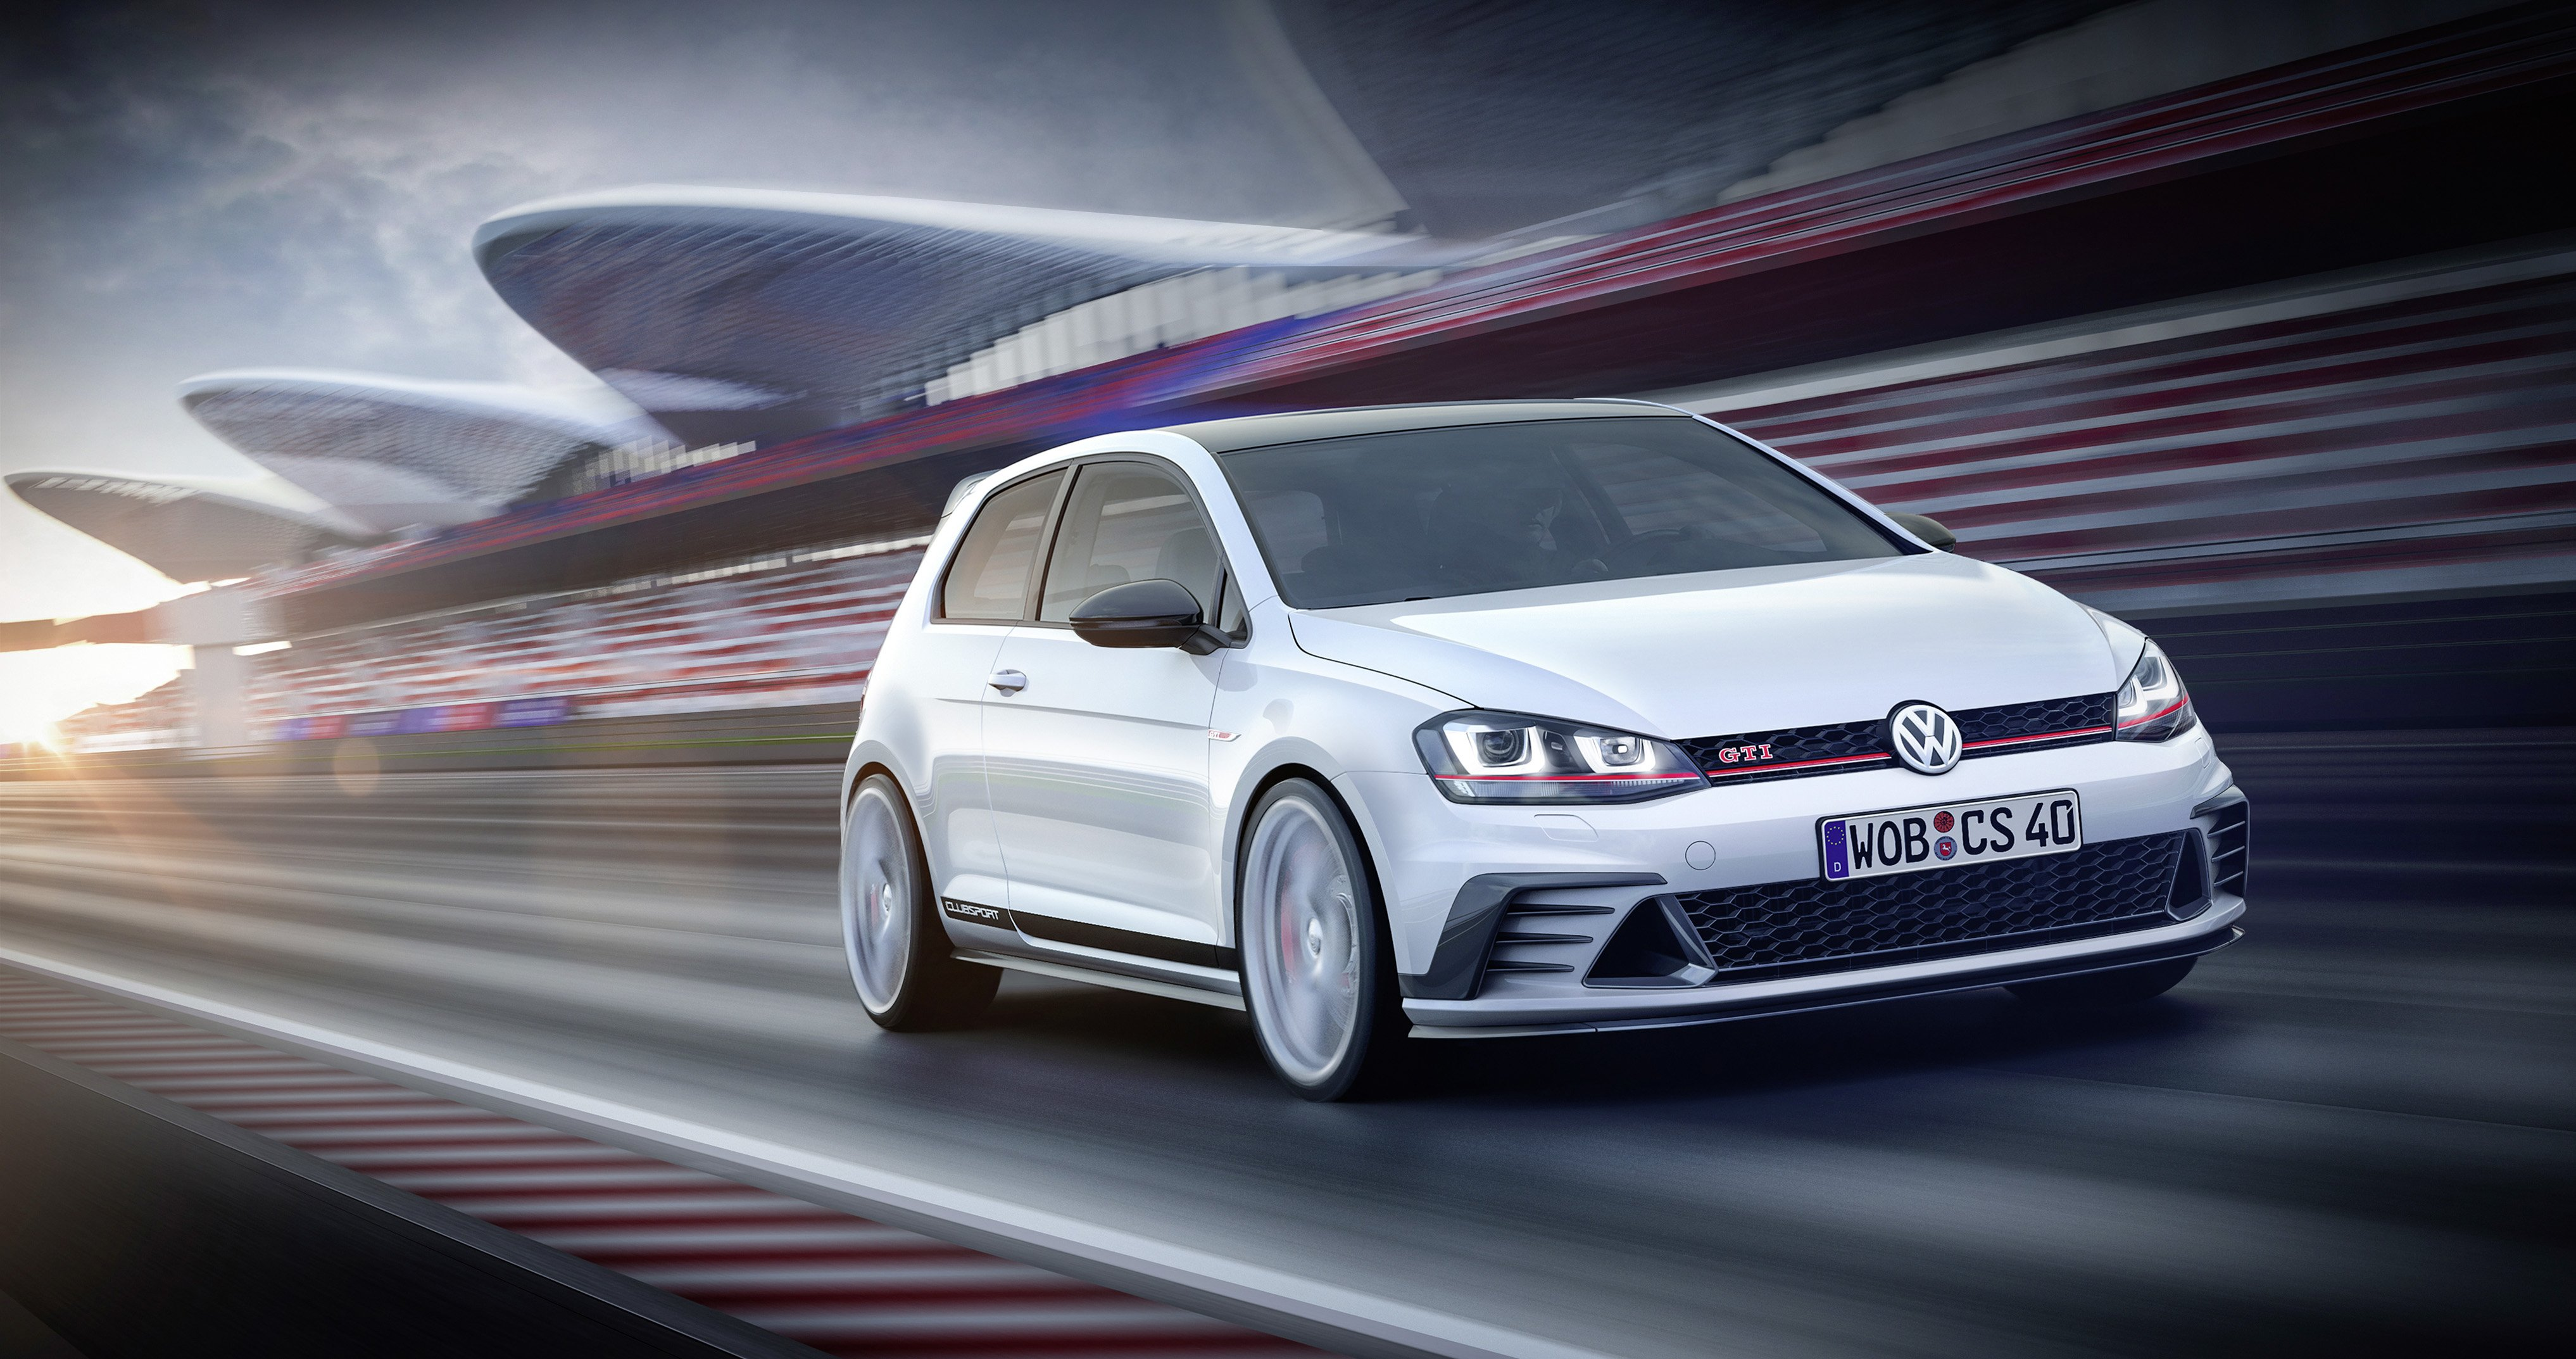 Volkswagen Golf GTI Clubsport Concept cars 2015 wallpaper 4069x2146 4069x2146